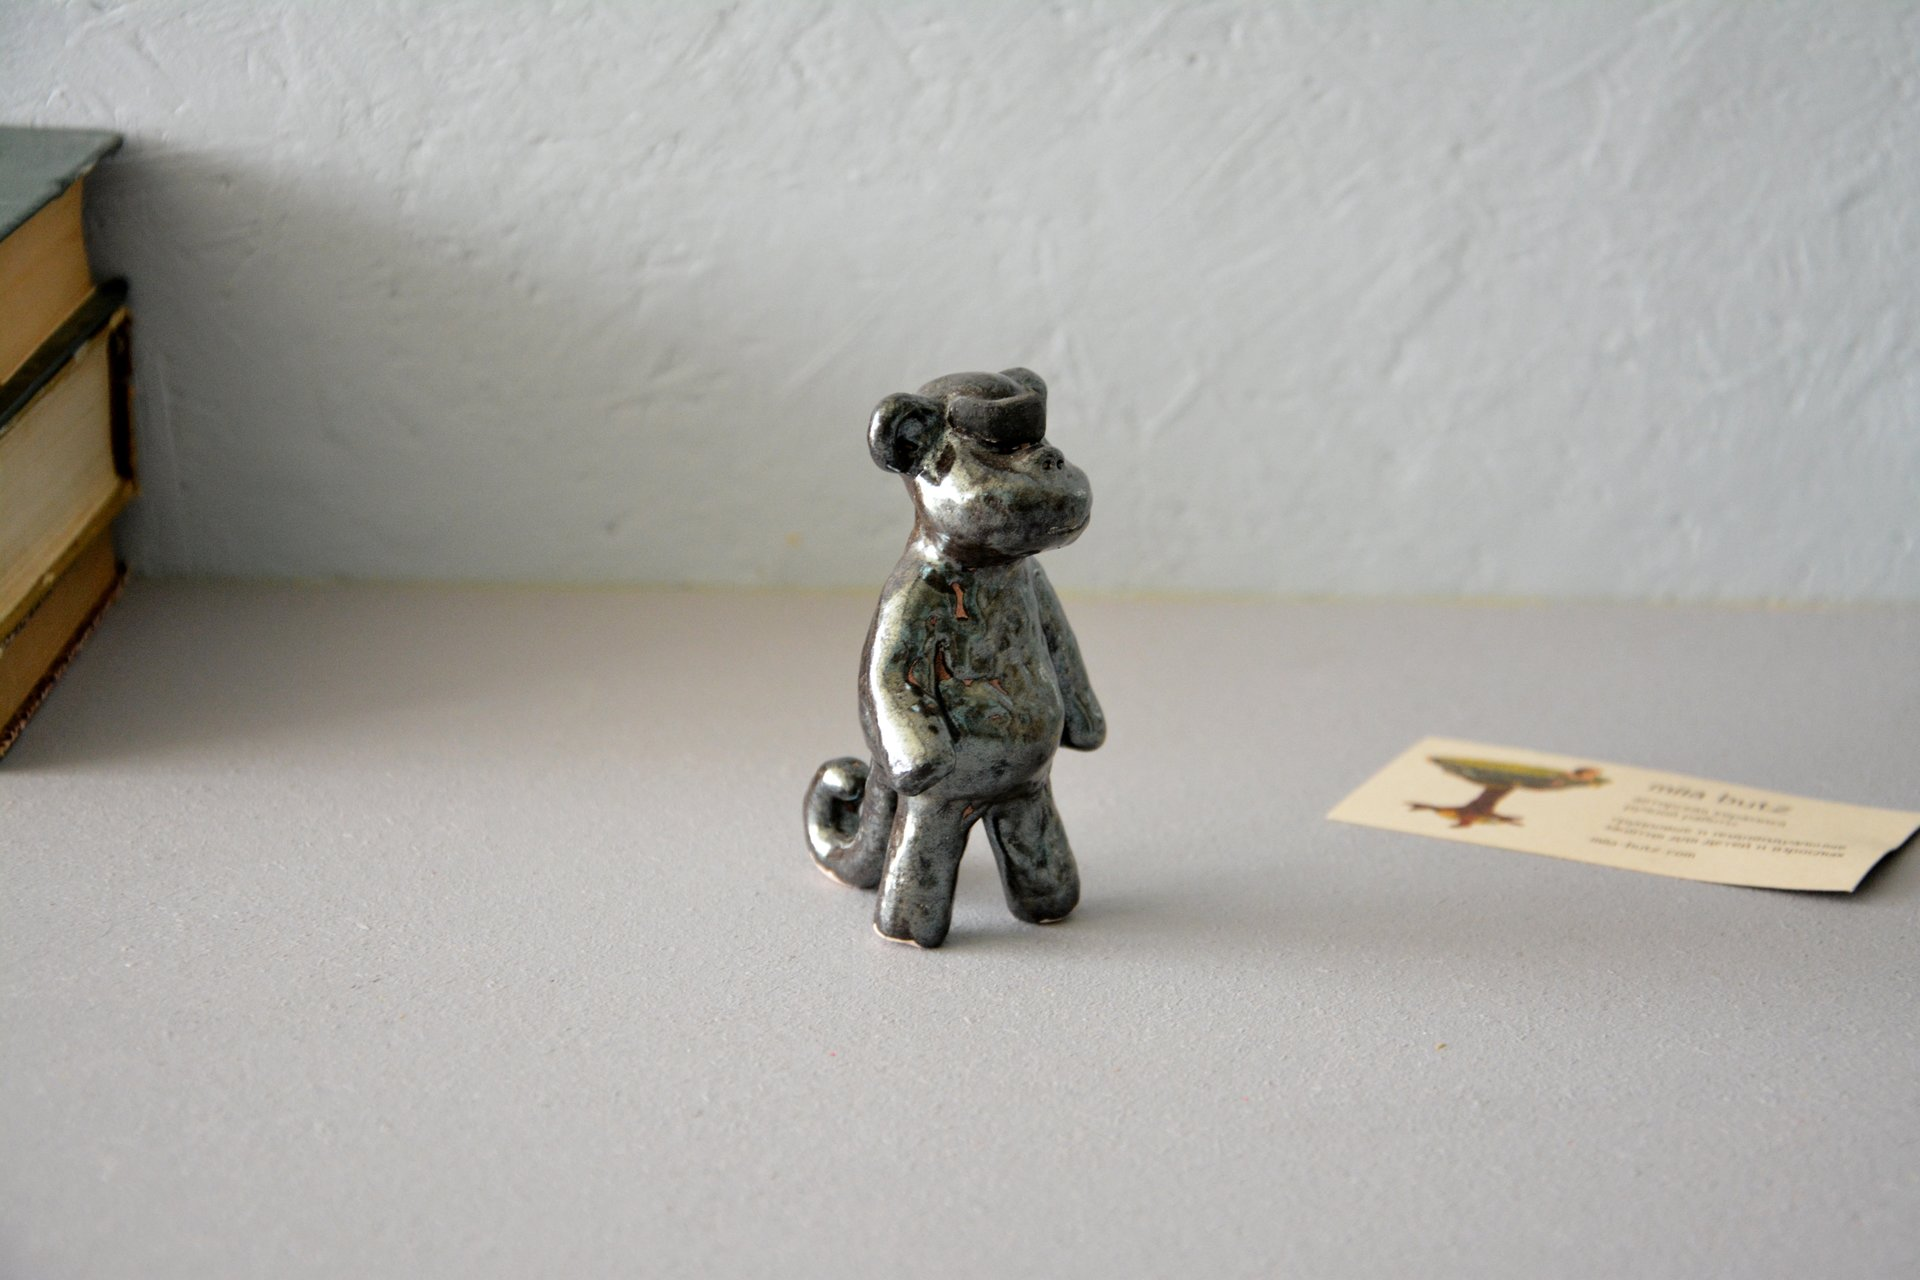 Robot — Monkeys - Animals and birds, height - 9 cm, photo 2 of 4.